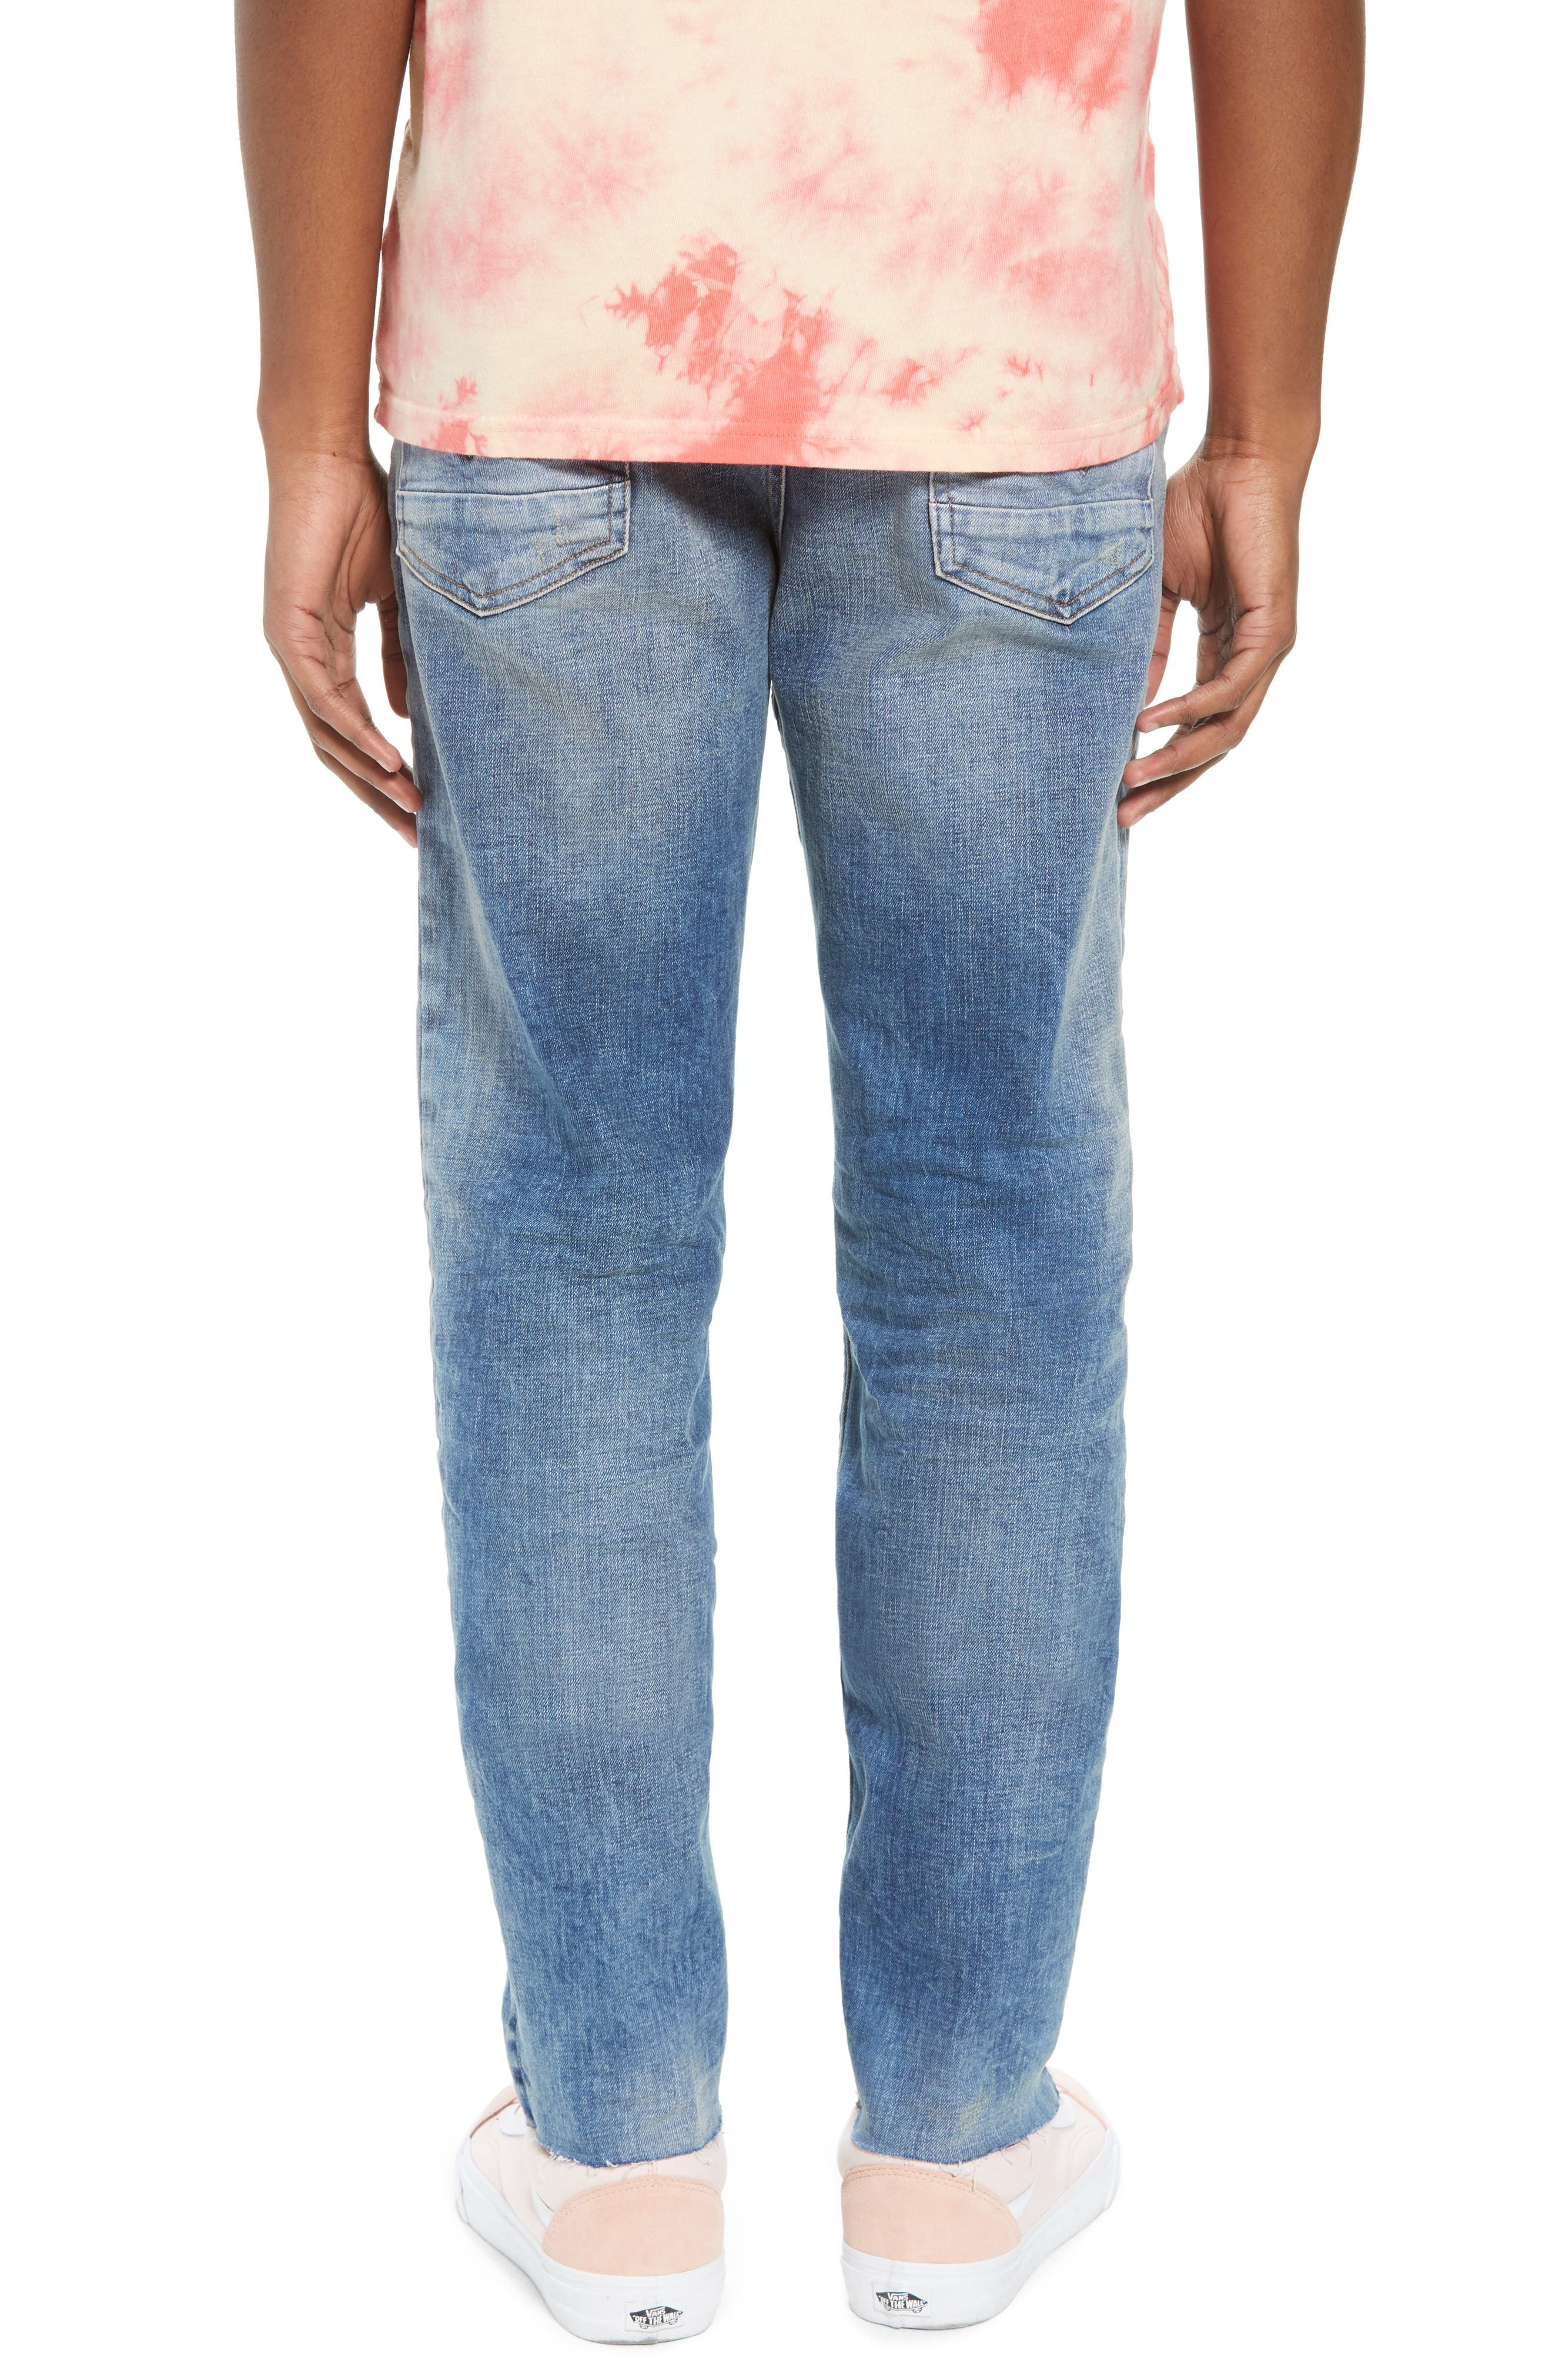 Sartor Slouchy Skinny Fit Jeans,                             Alternate thumbnail 2, color,                             429